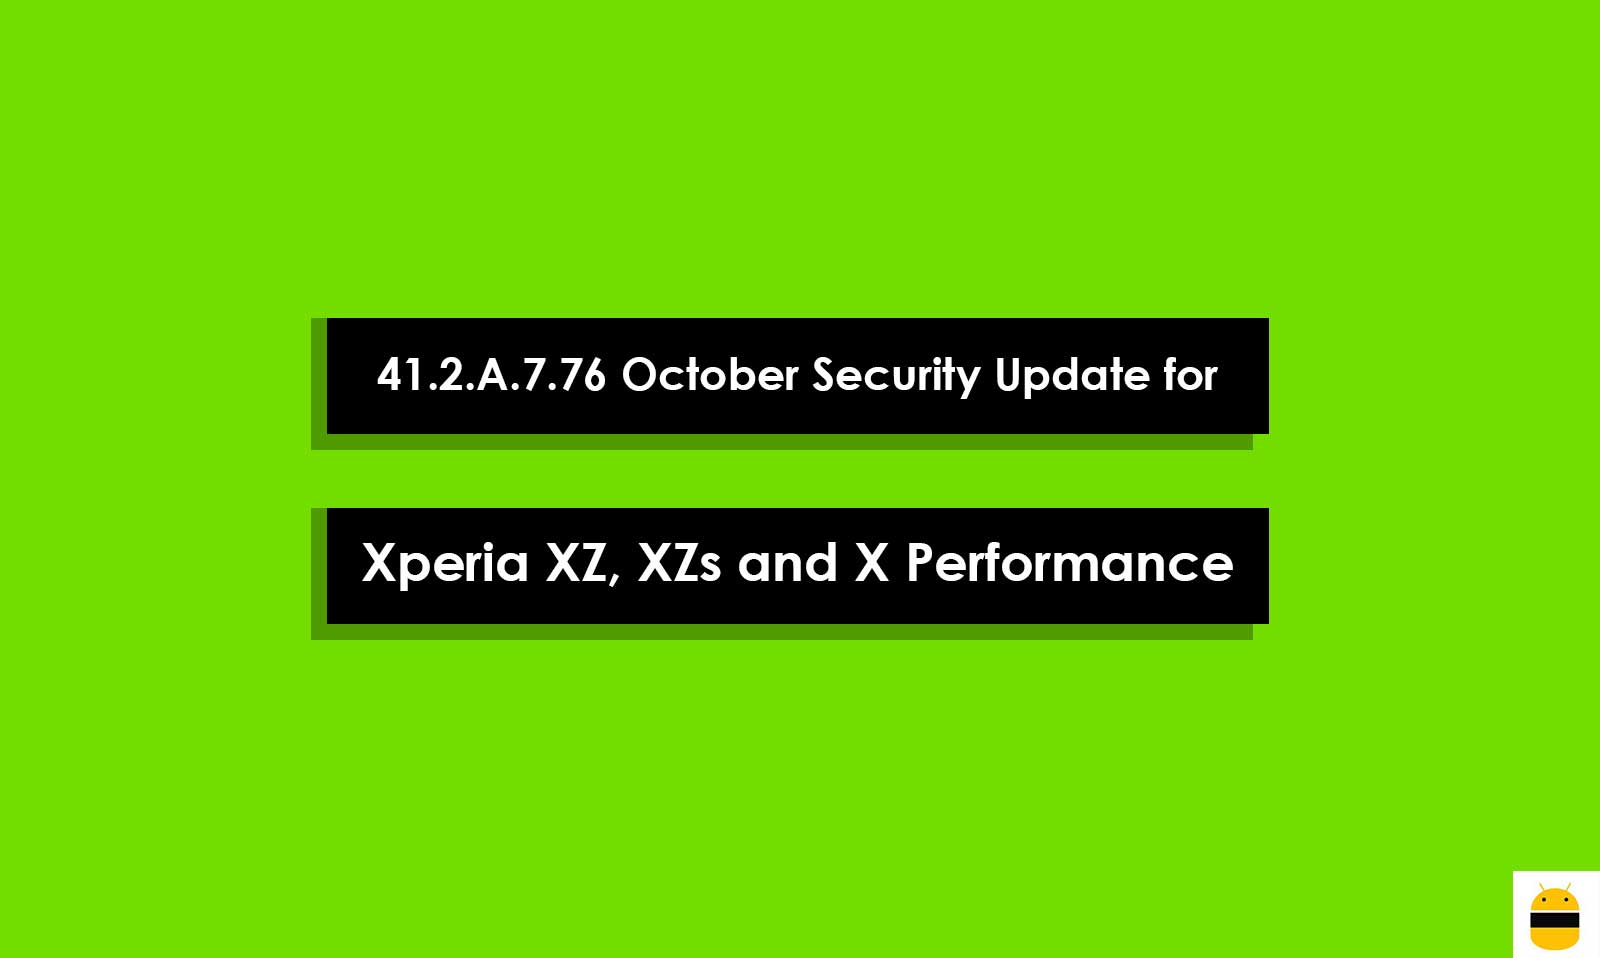 Download 41.2.A.7.76 October Security Update for Xperia XZ, XZs and X Performance